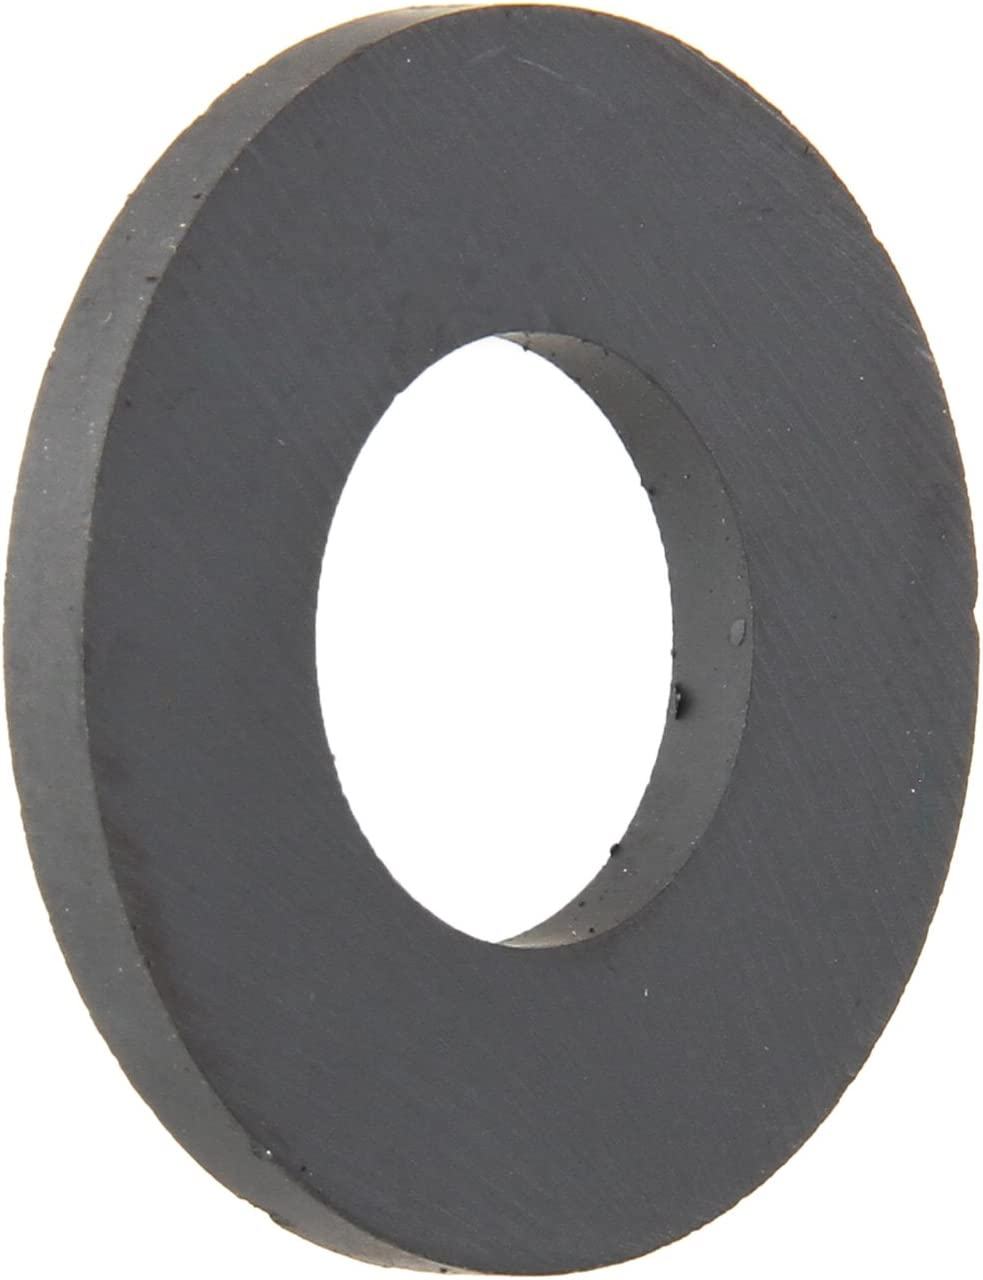 Max 47% OFF Genuine New product! New type GM 29535617 Automatic Pan Transmission Magnet Fluid